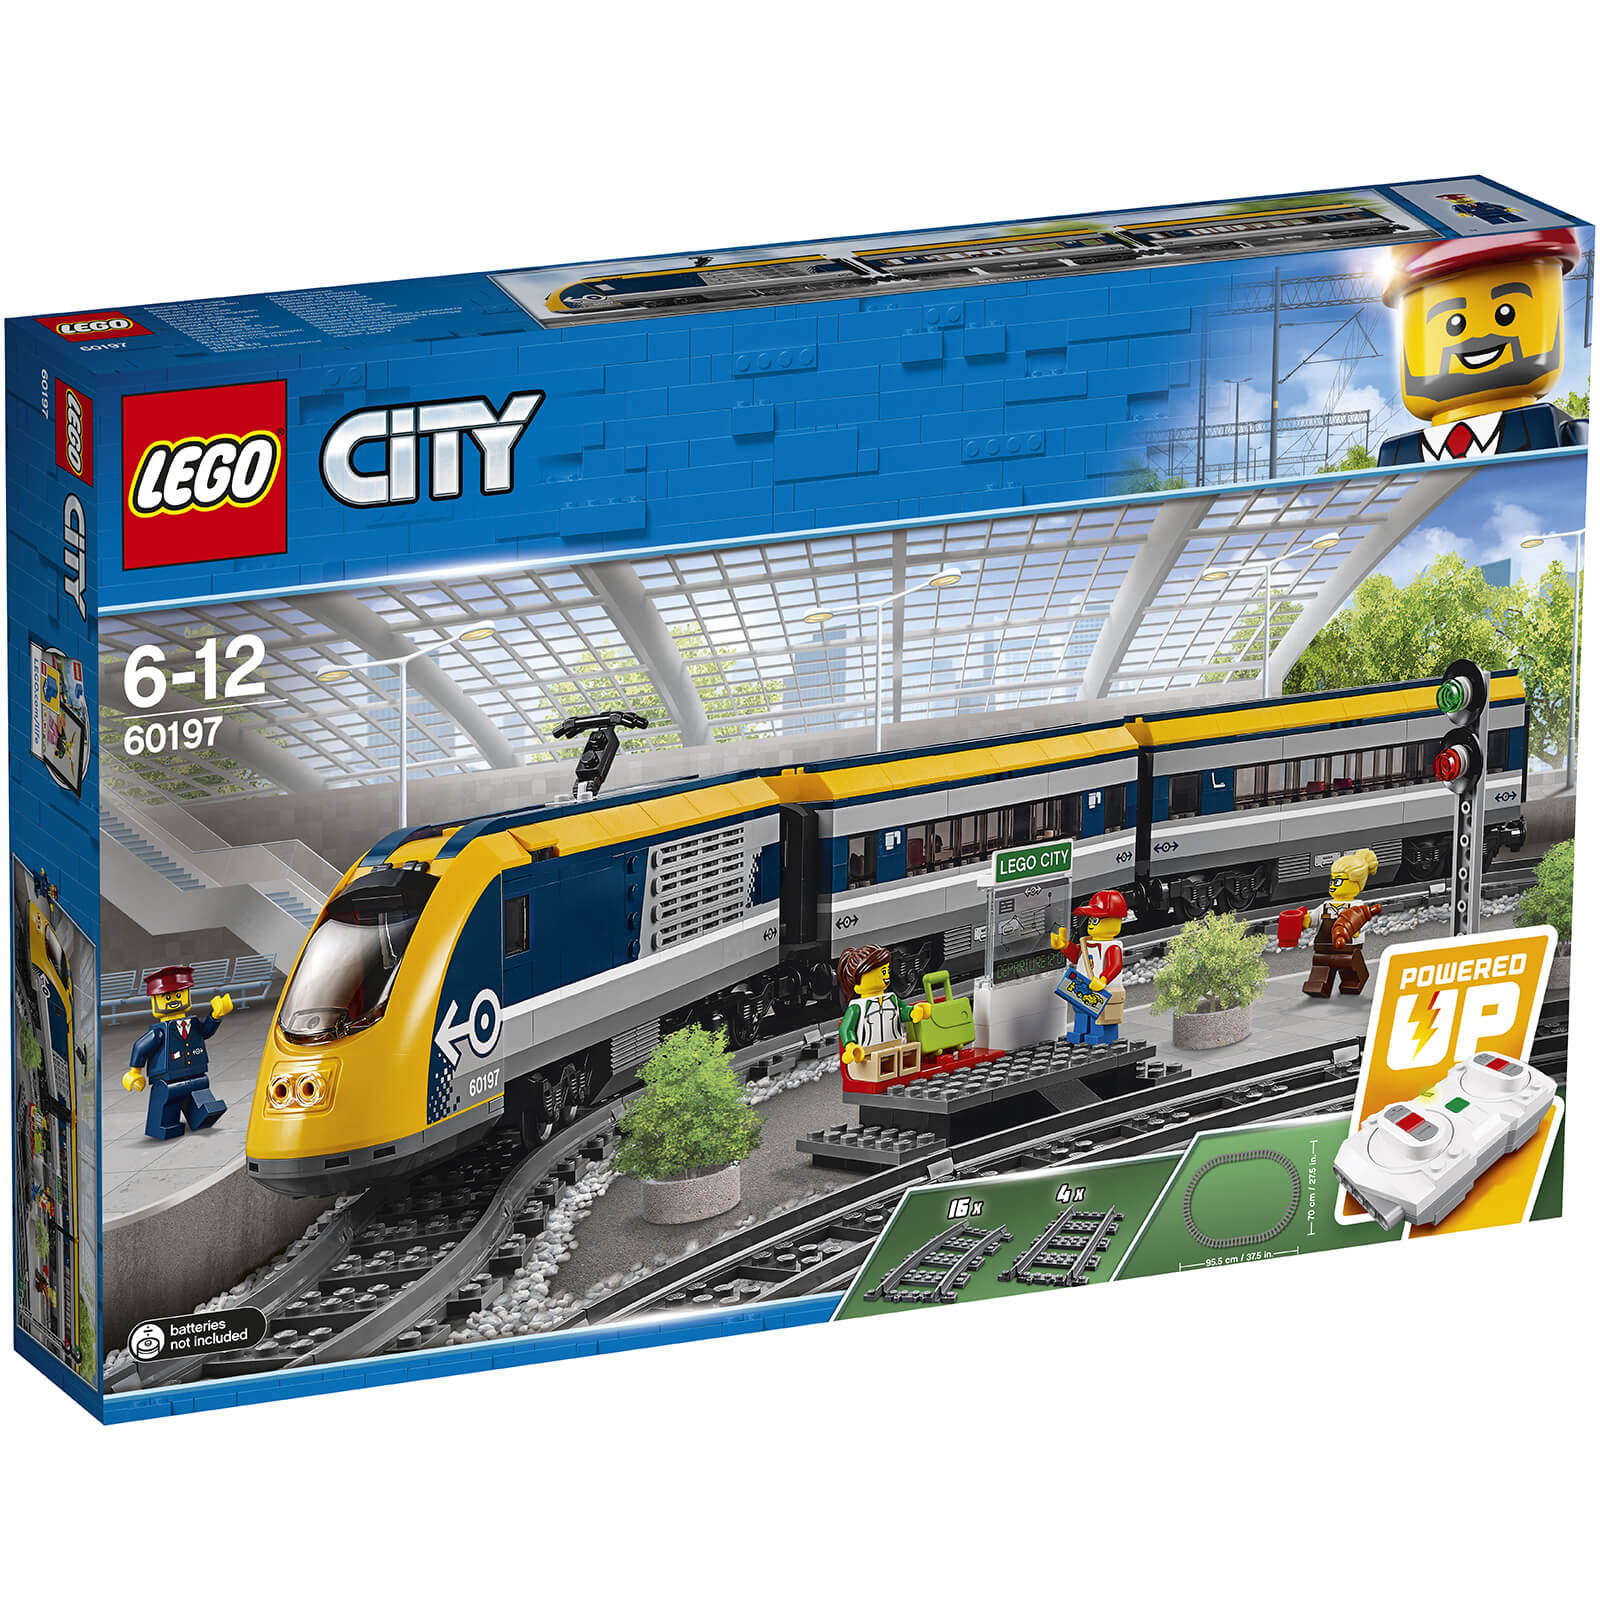 Image of 60197 LEGO® CITY Passenger train